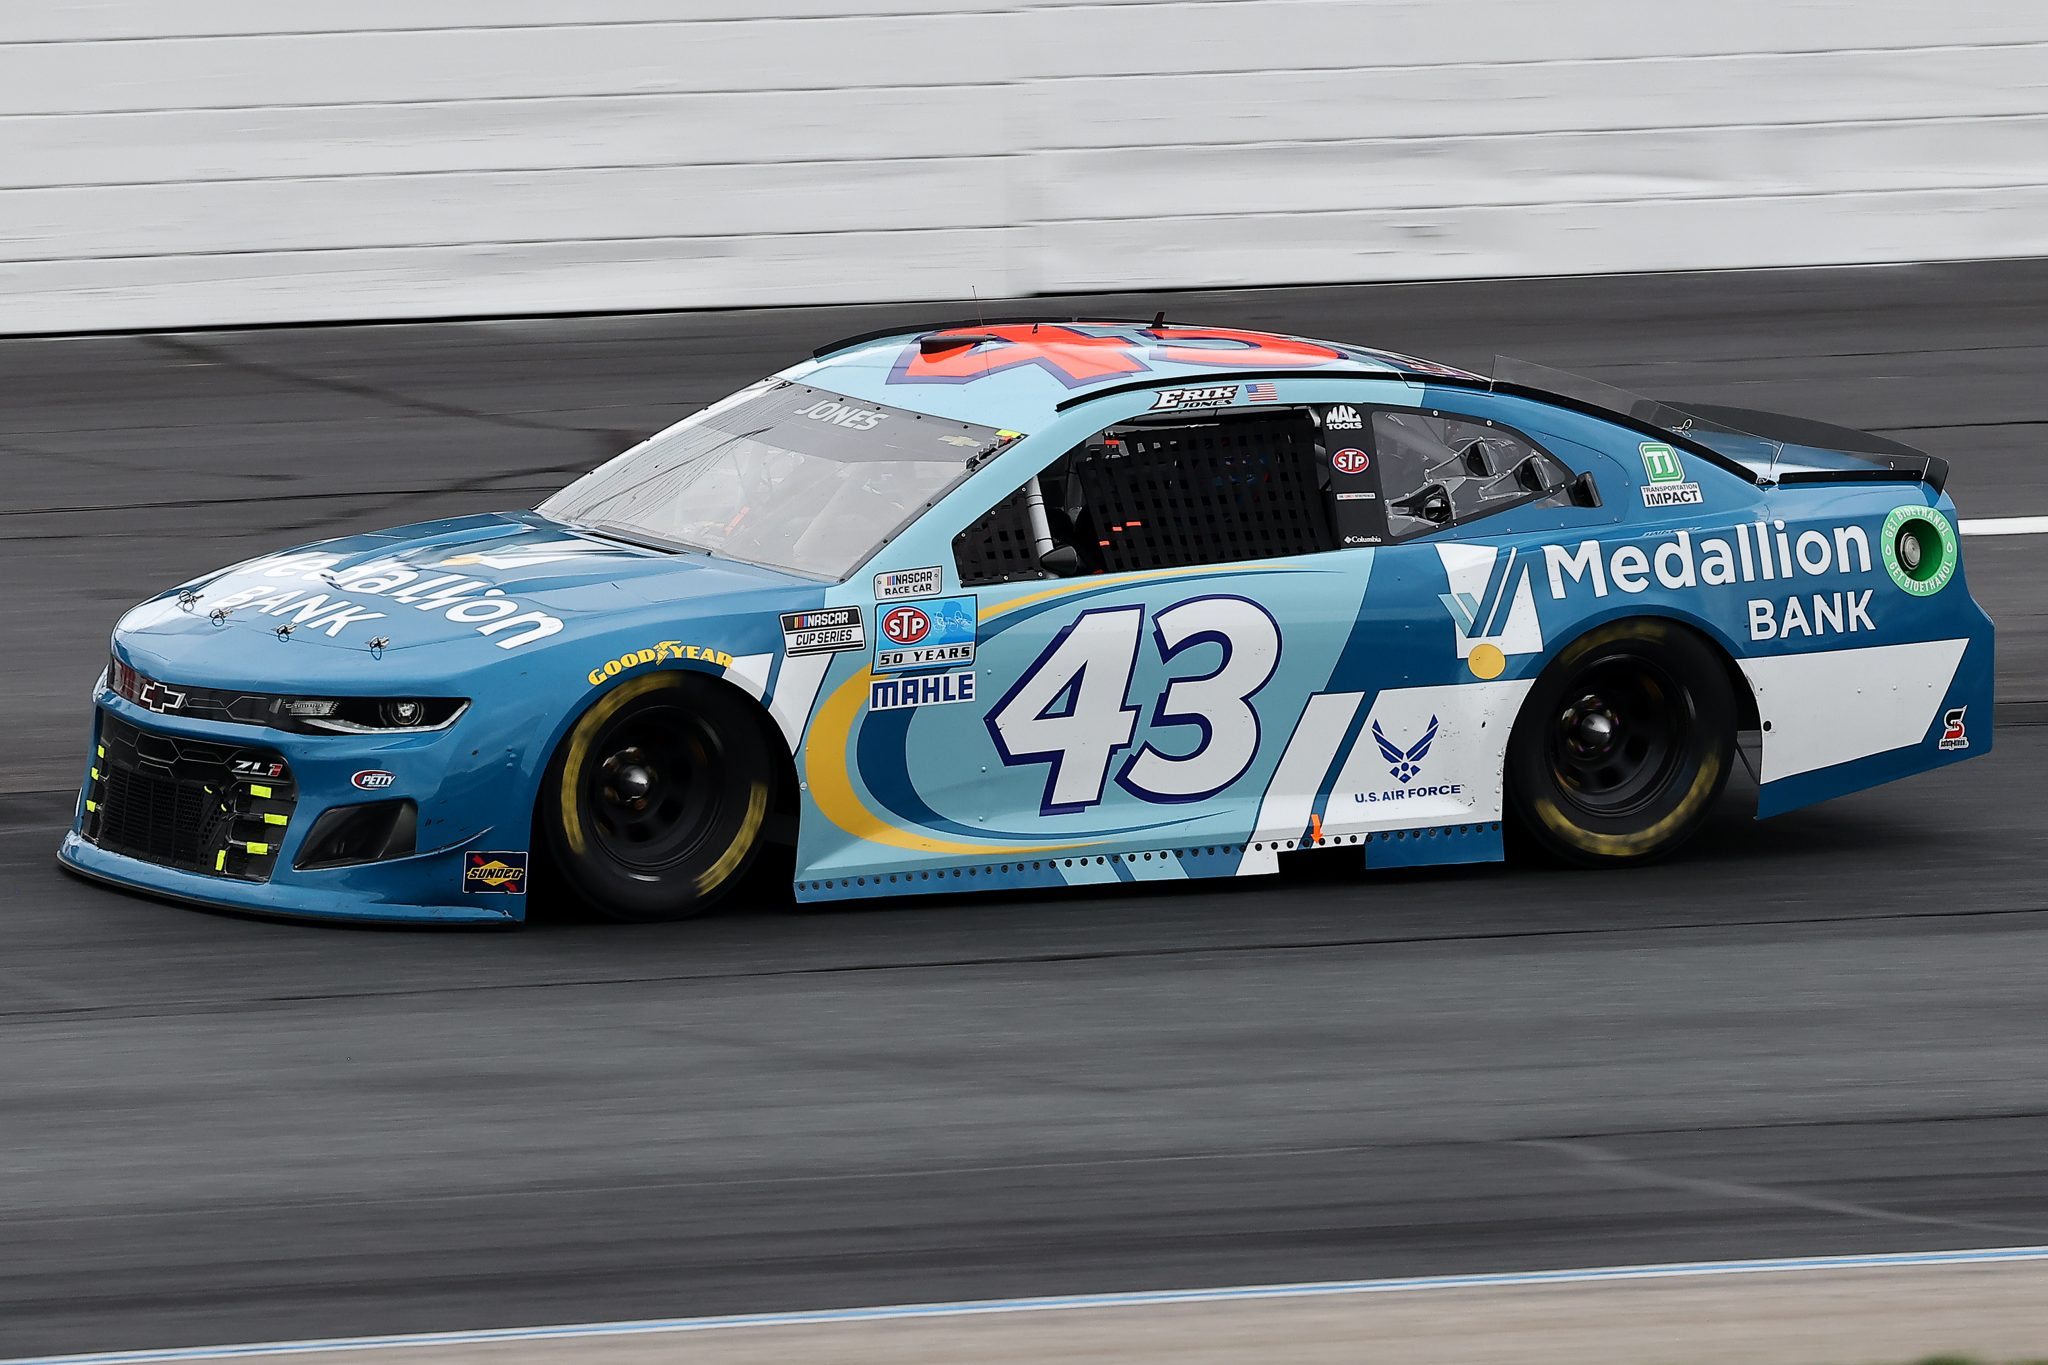 LOUDON, NEW HAMPSHIRE - JULY 18: Erik Jones, driver of the #43 Medallion Bank Chevrolet, drives during the NASCAR Cup Series Foxwoods Resort Casino 301 at New Hampshire Motor Speedway on July 18, 2021 in Loudon, New Hampshire. (Photo by James Gilbert/Getty Images) | Getty Images